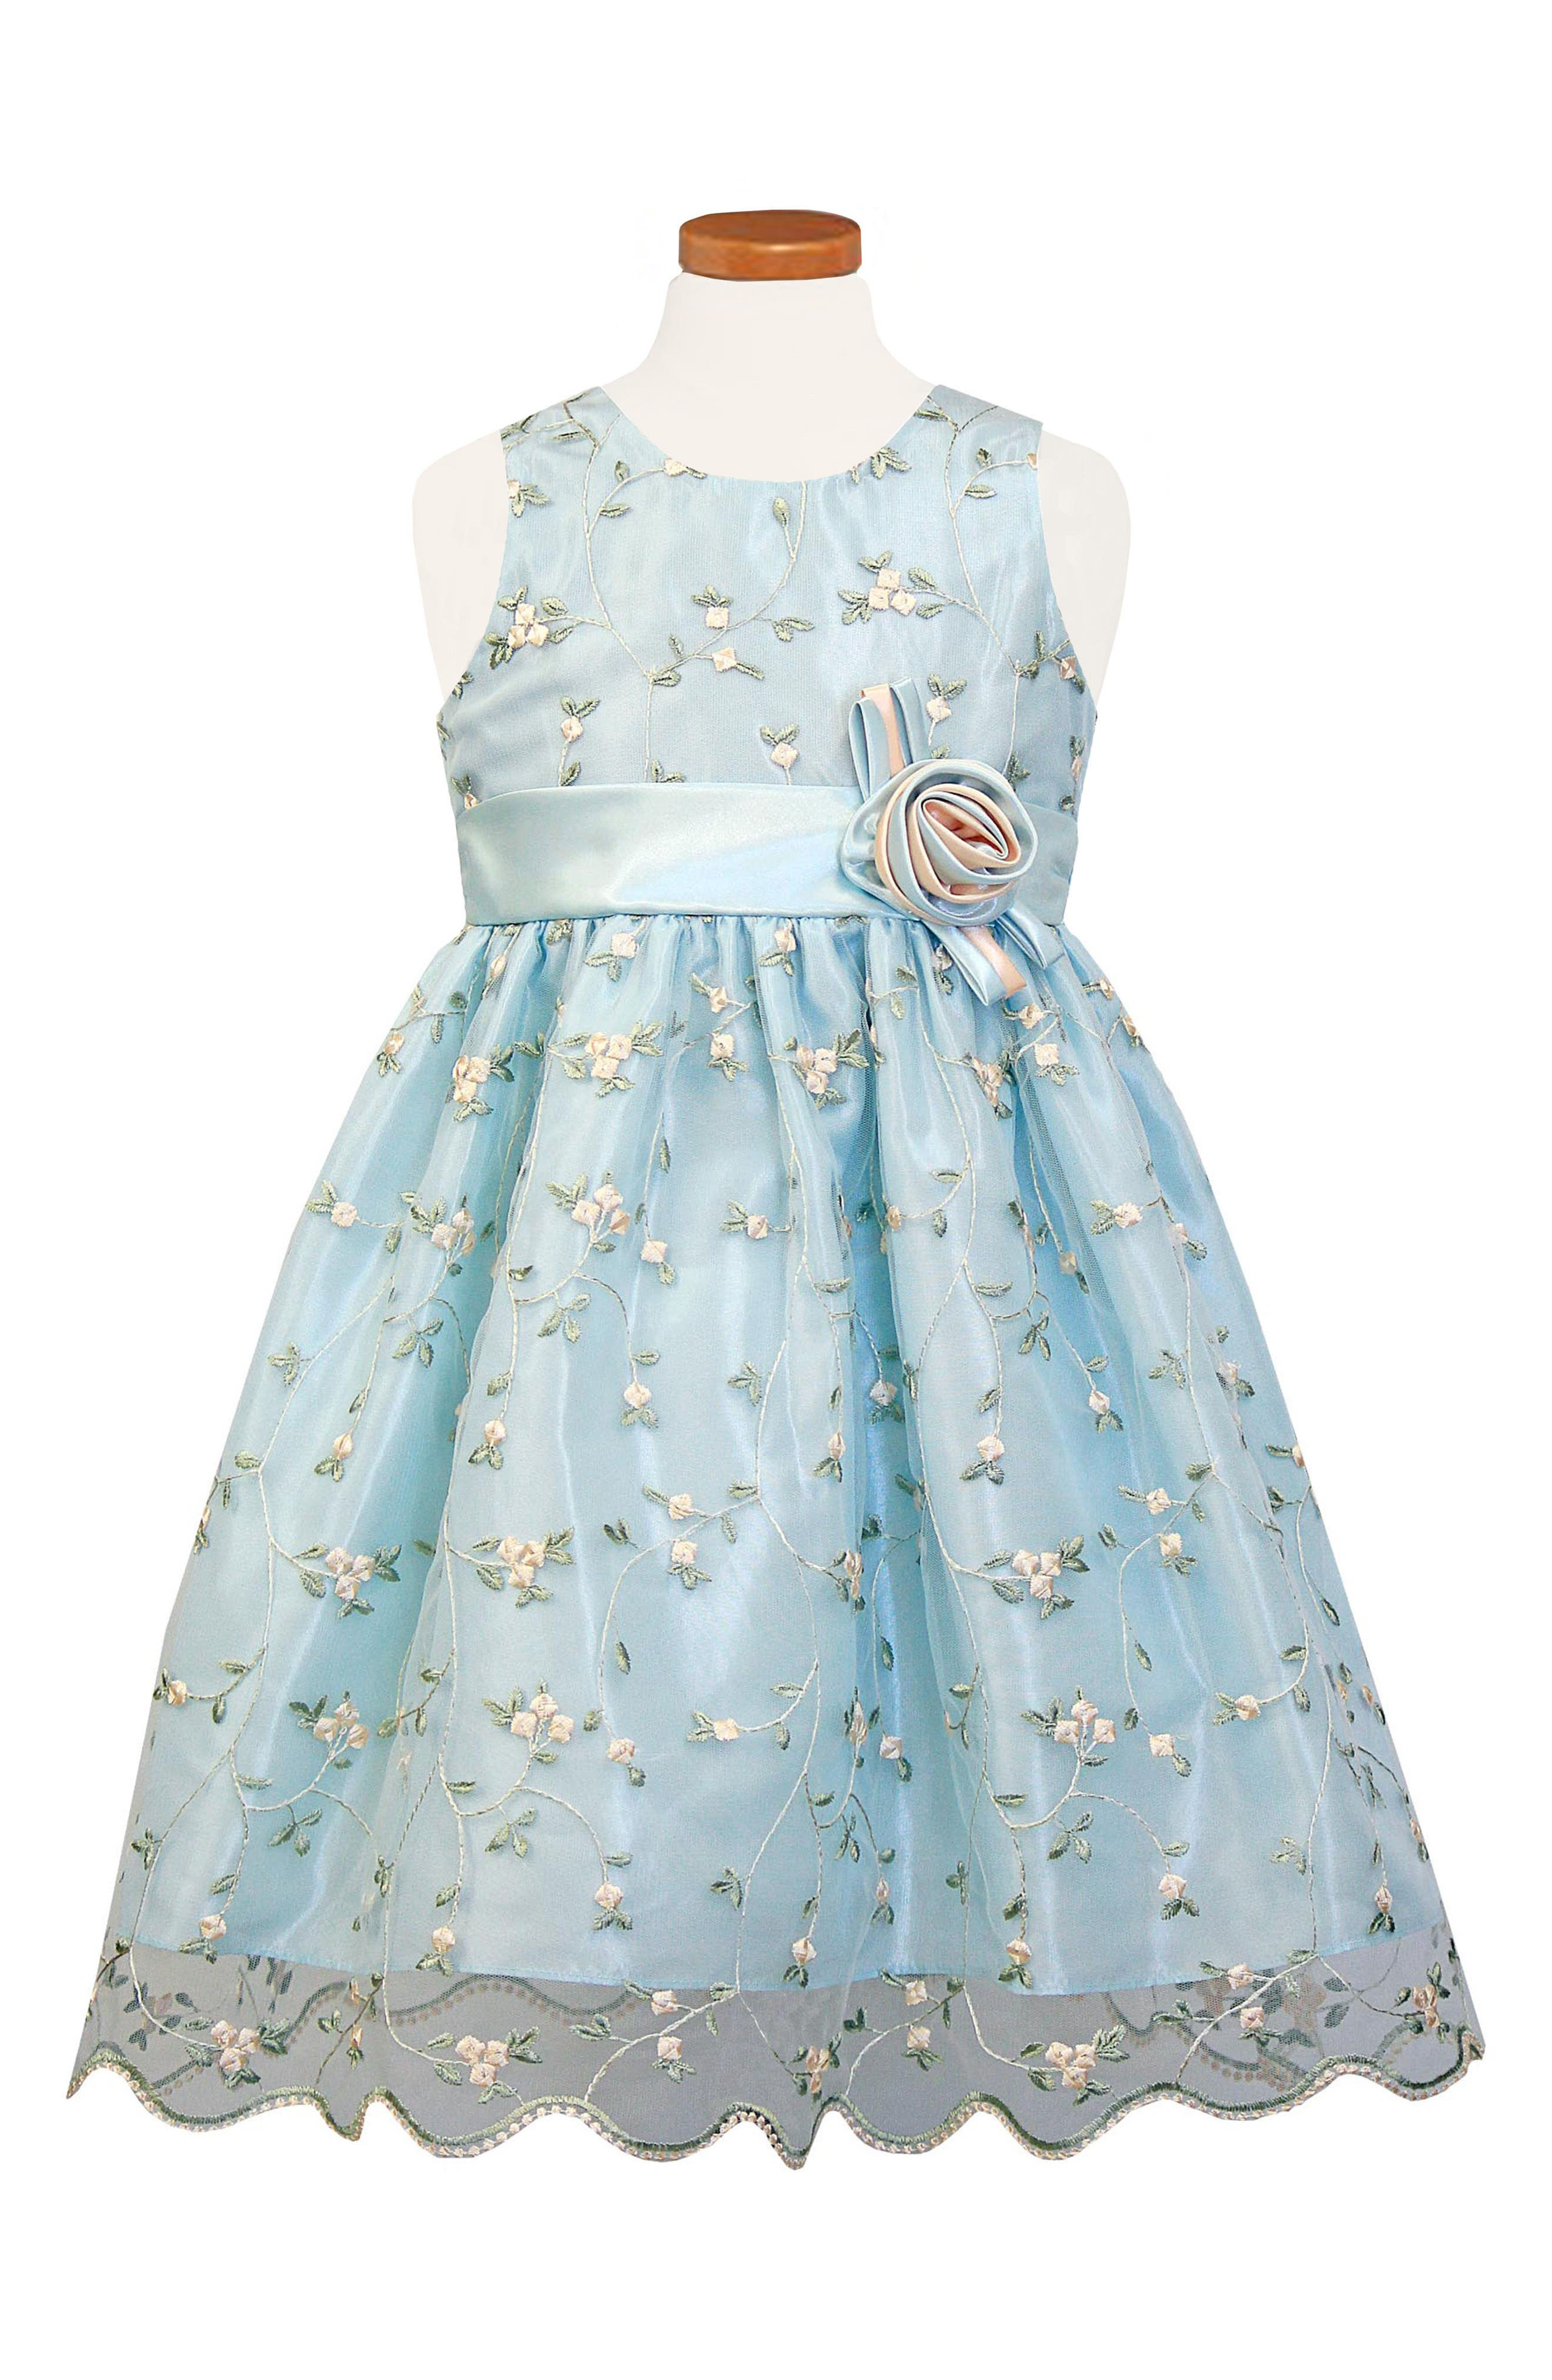 Embroidered Floral Organza Party Dress,                         Main,                         color, Blue